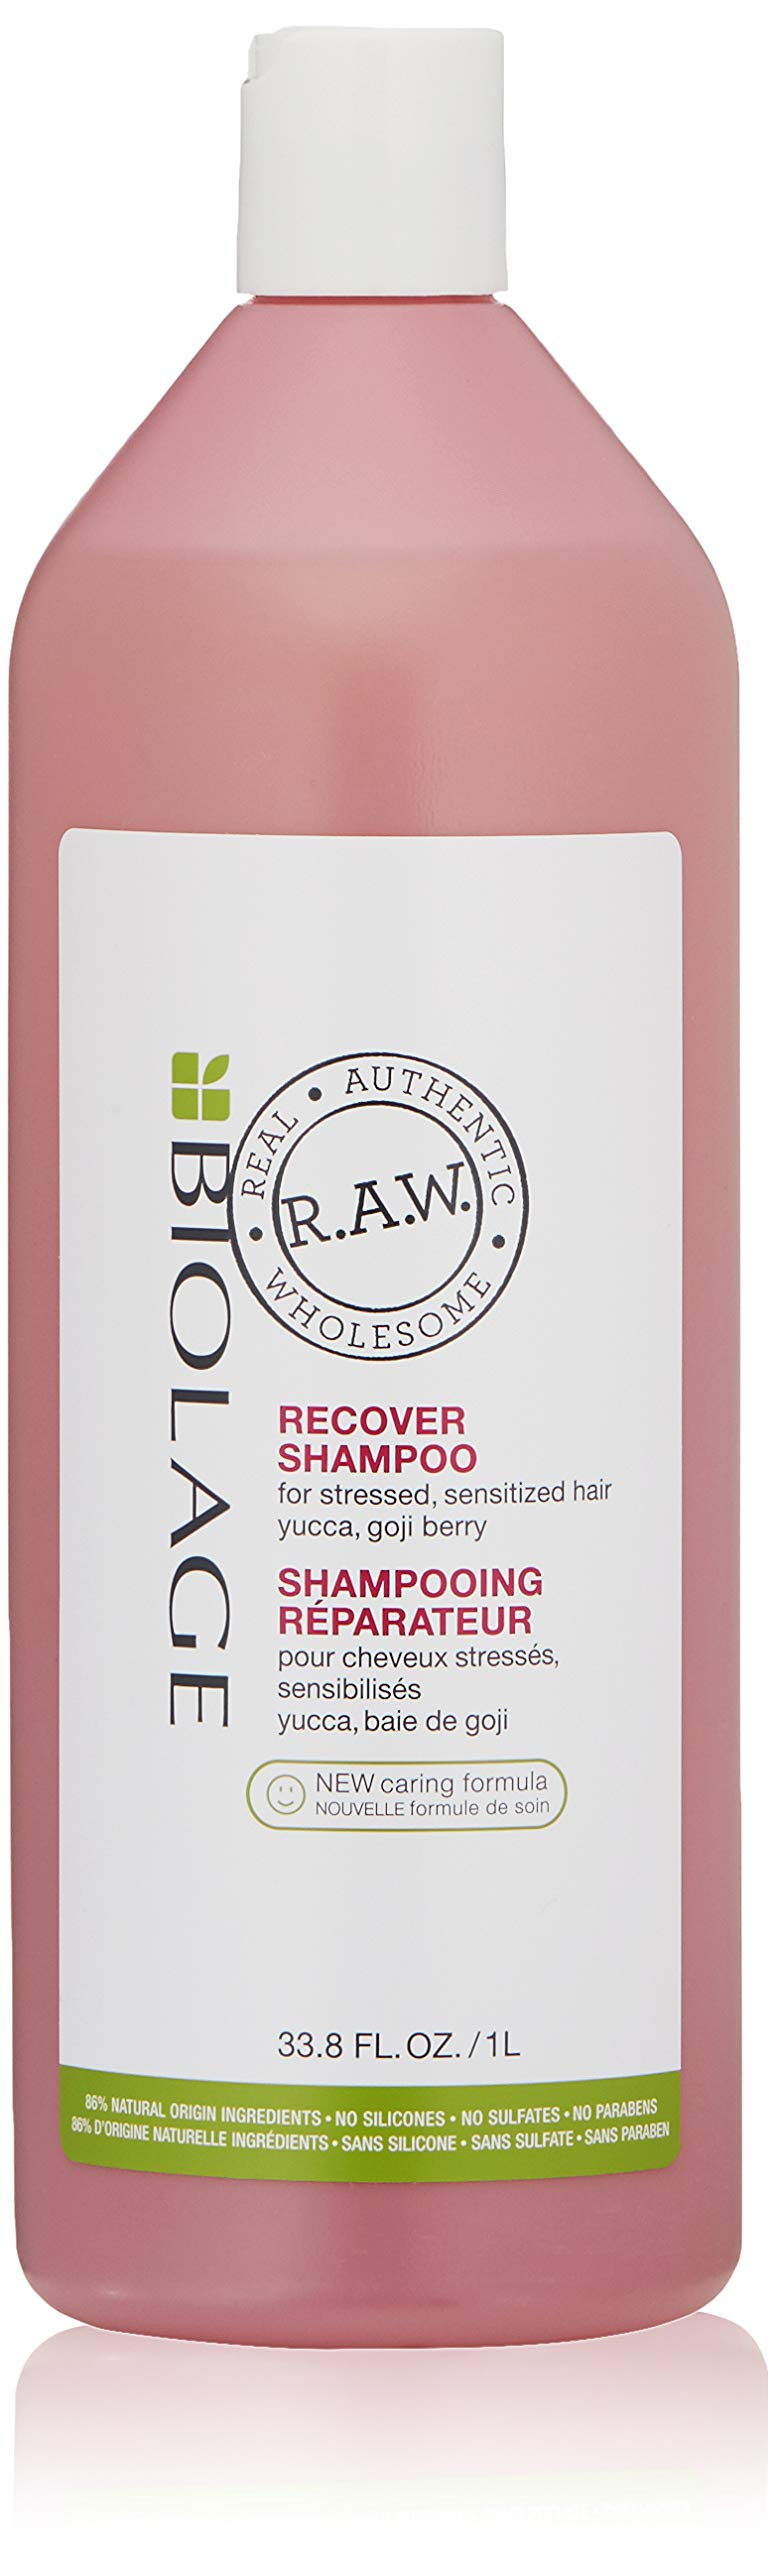 BIOLAGE R.A.W. Recover Shampoo for Stressed, Sulfate Free, Sensitized Hair with Yucca and Goji Berry, Sulfate Free, 33.8 fl. oz. by BIOLAGE